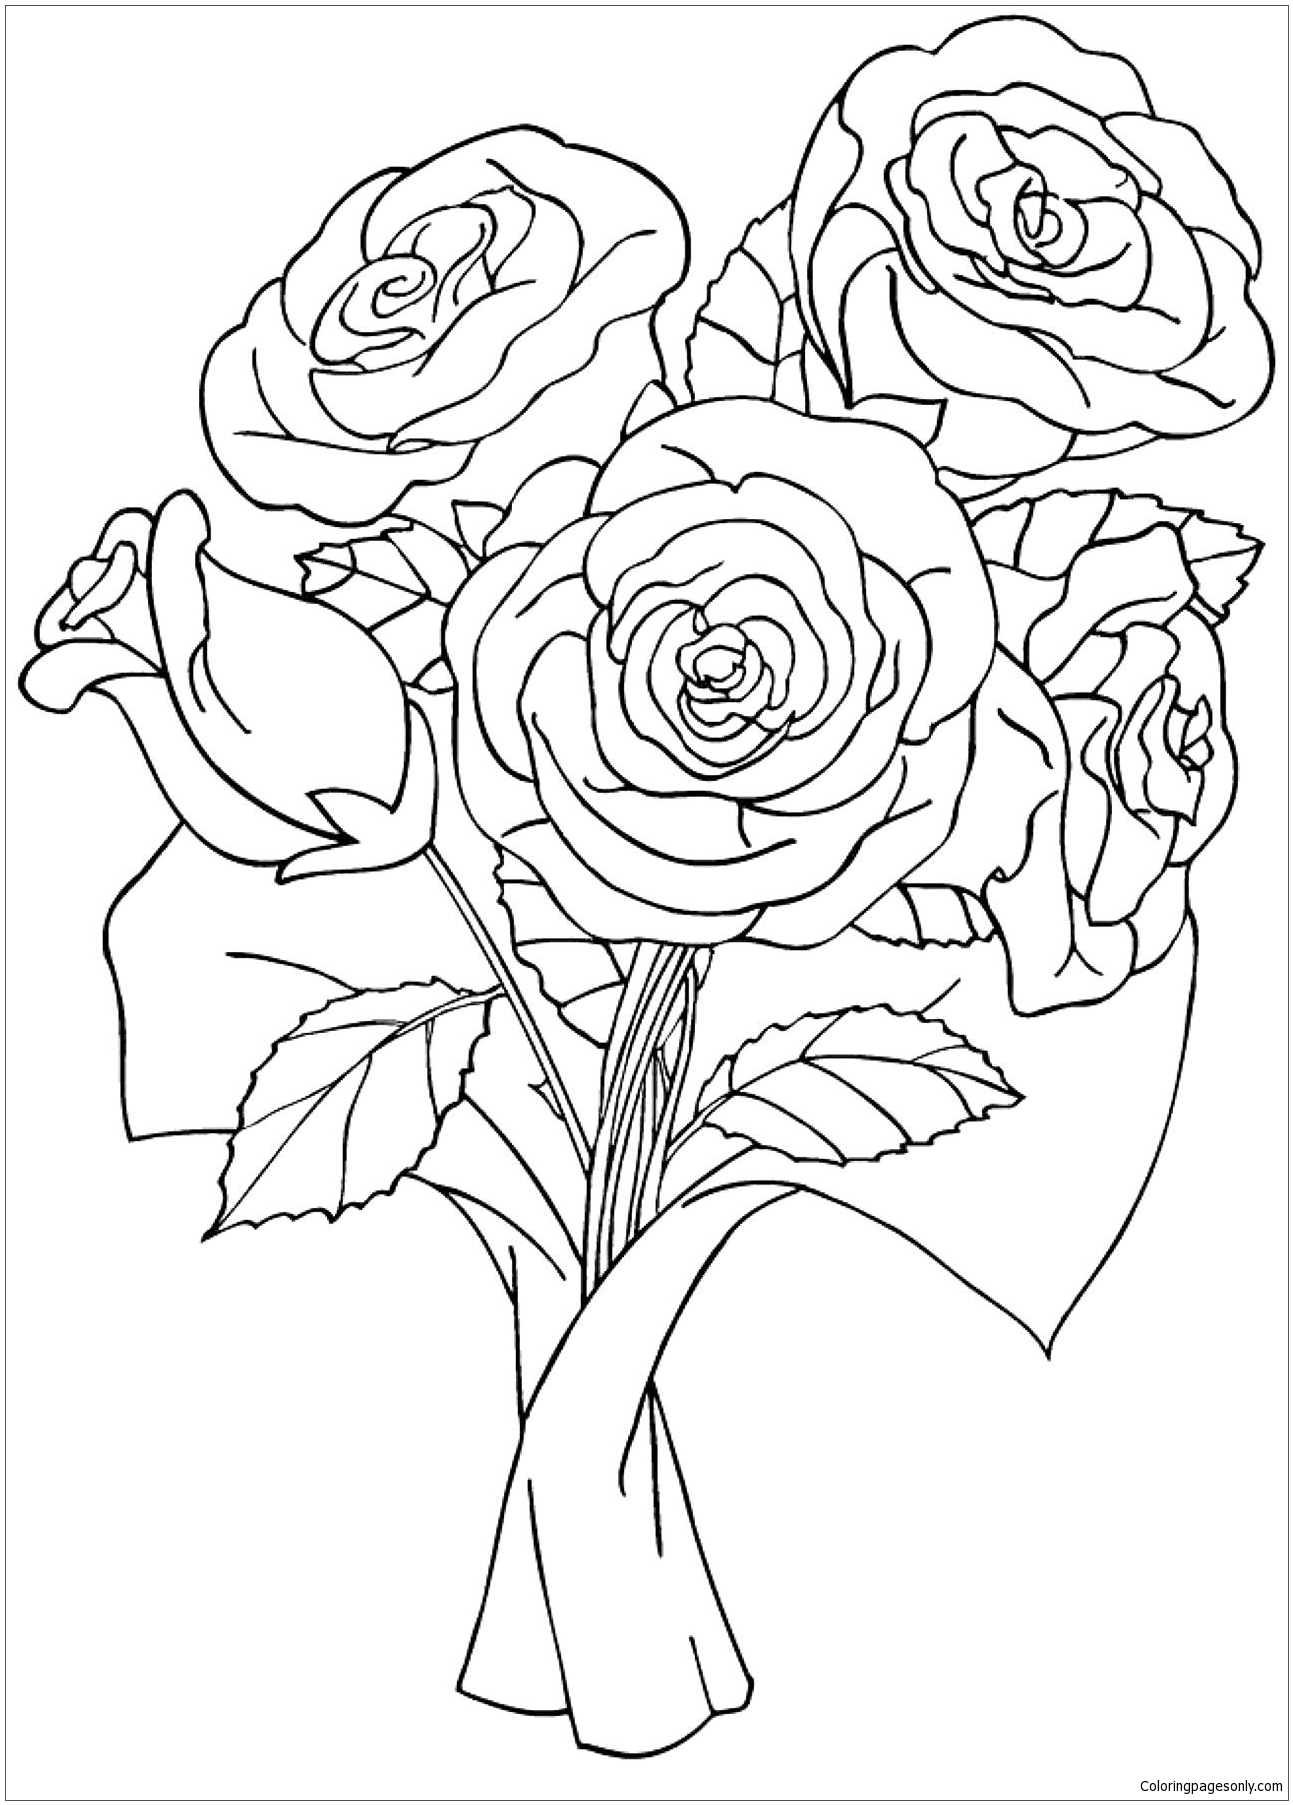 rose colouring pages pin by regina perry on sketches detailed coloring pages pages rose colouring